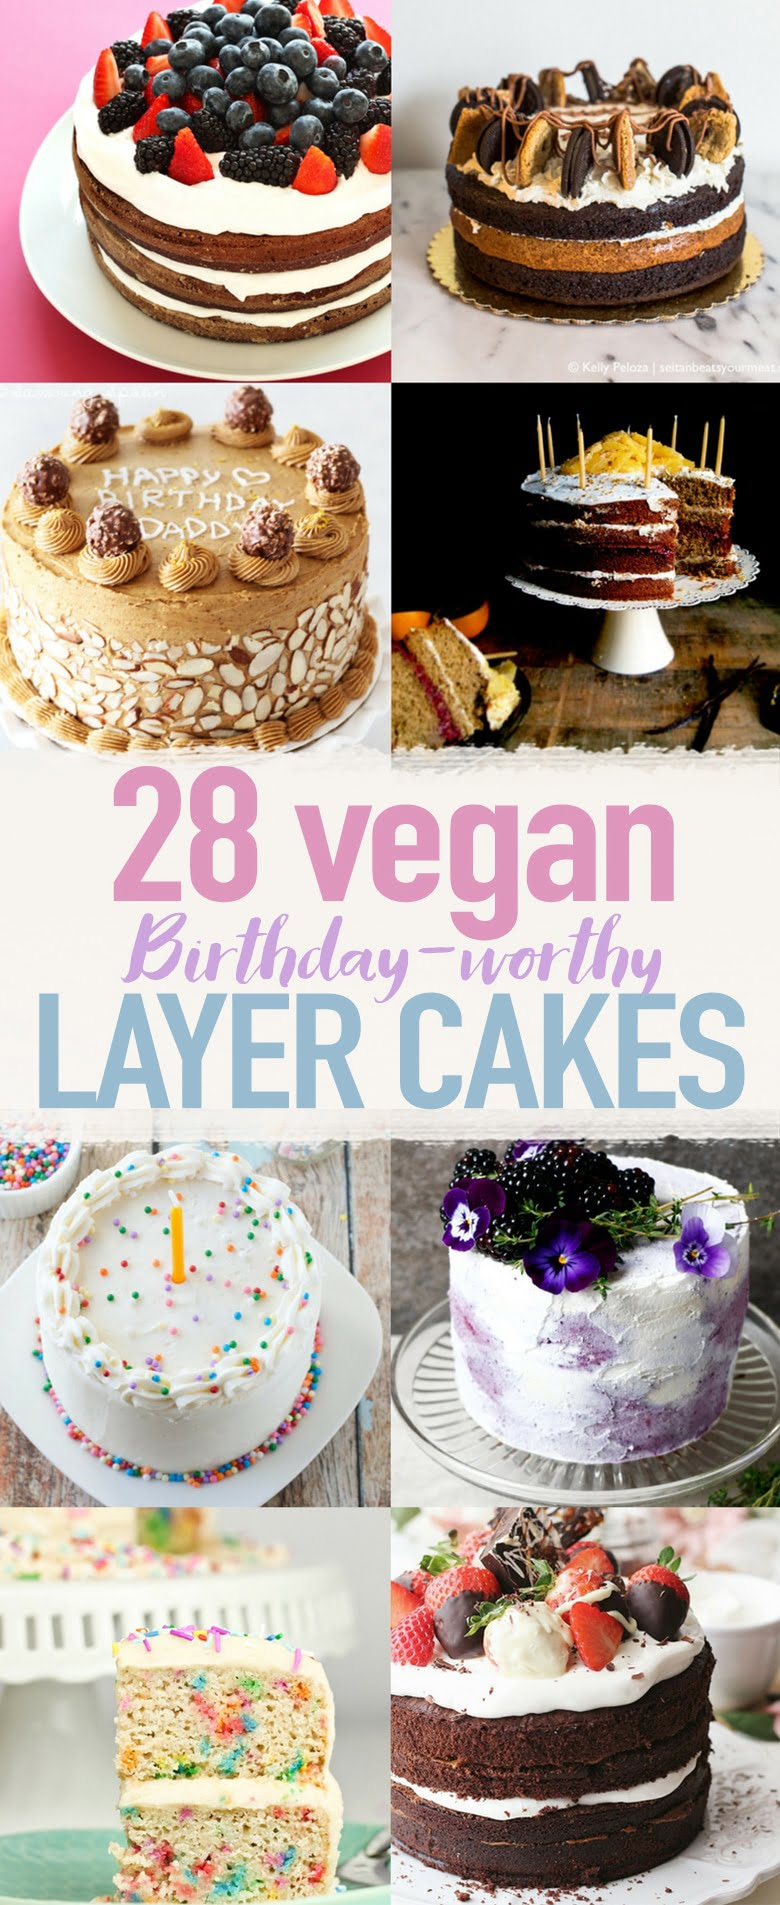 Vegane Oreo Torte 28 Birthday Worthy Vegan Layer Cakes Wallflower Kitchen